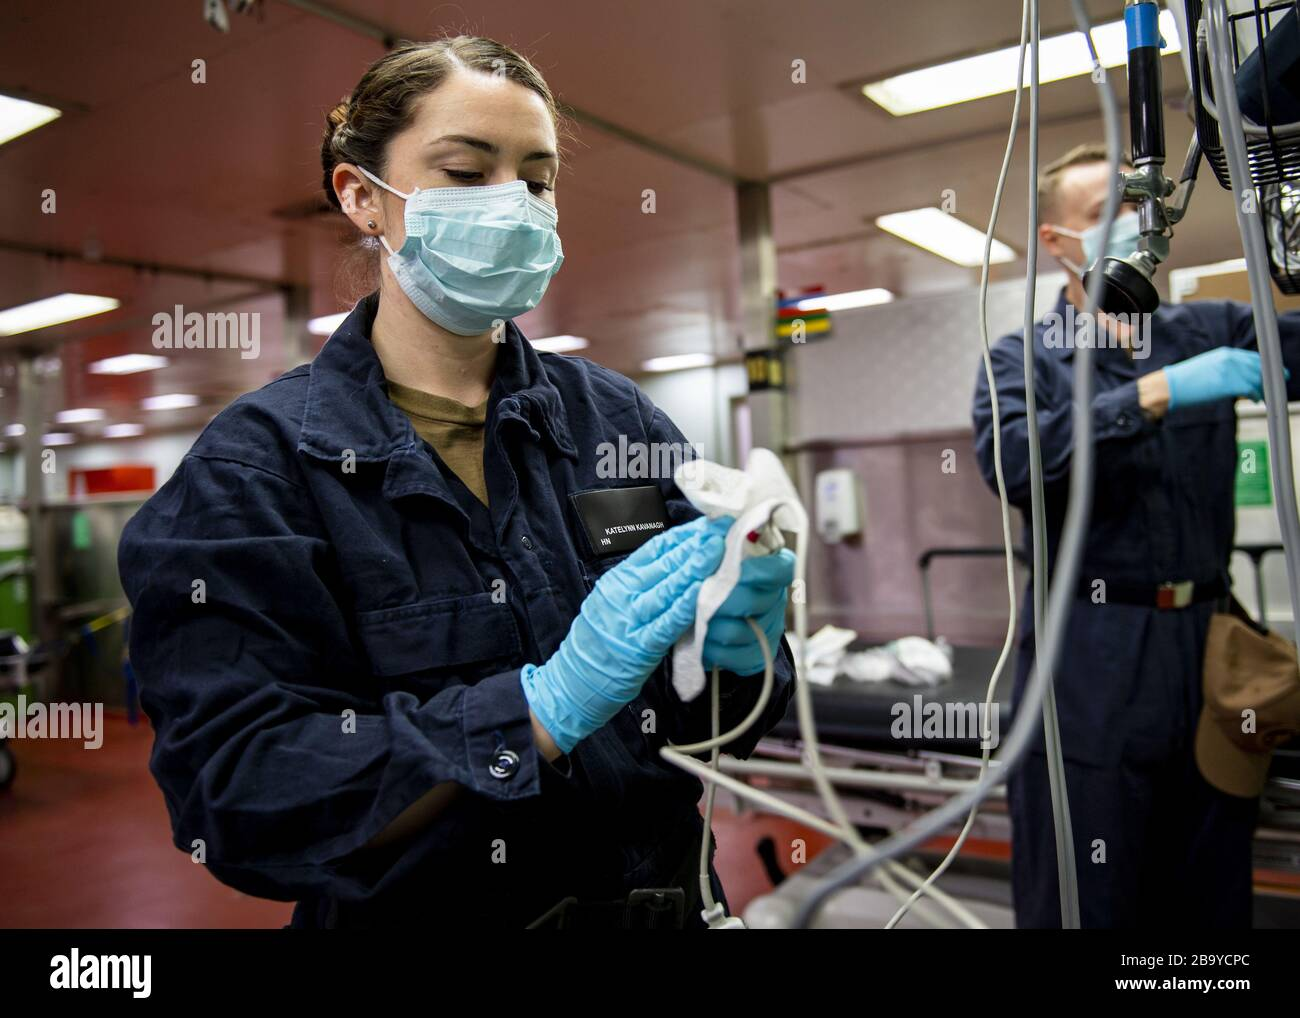 Los Angeles, California, USA. 25th Mar, 2020. Hospitalman Katelynn Kavanagh, from Temecula, Calif., sanitizes medical equipment aboard the Military Sealift Command hospital ship USNS Mercy (T-AH 19) on March 24, 2020. Mercy deployed in support of the nation's COVID-19 response efforts, and will serve as a referral hospital for non-COVID-19 patients currently admitted to shore-based hospitals. This allows shore base hospitals to focus their efforts on COVID-19 cases. One of the Department of Defense's missions is Defense Support of Civil Authorities. DoD is supporting the Federal Emergency Mana Stock Photo